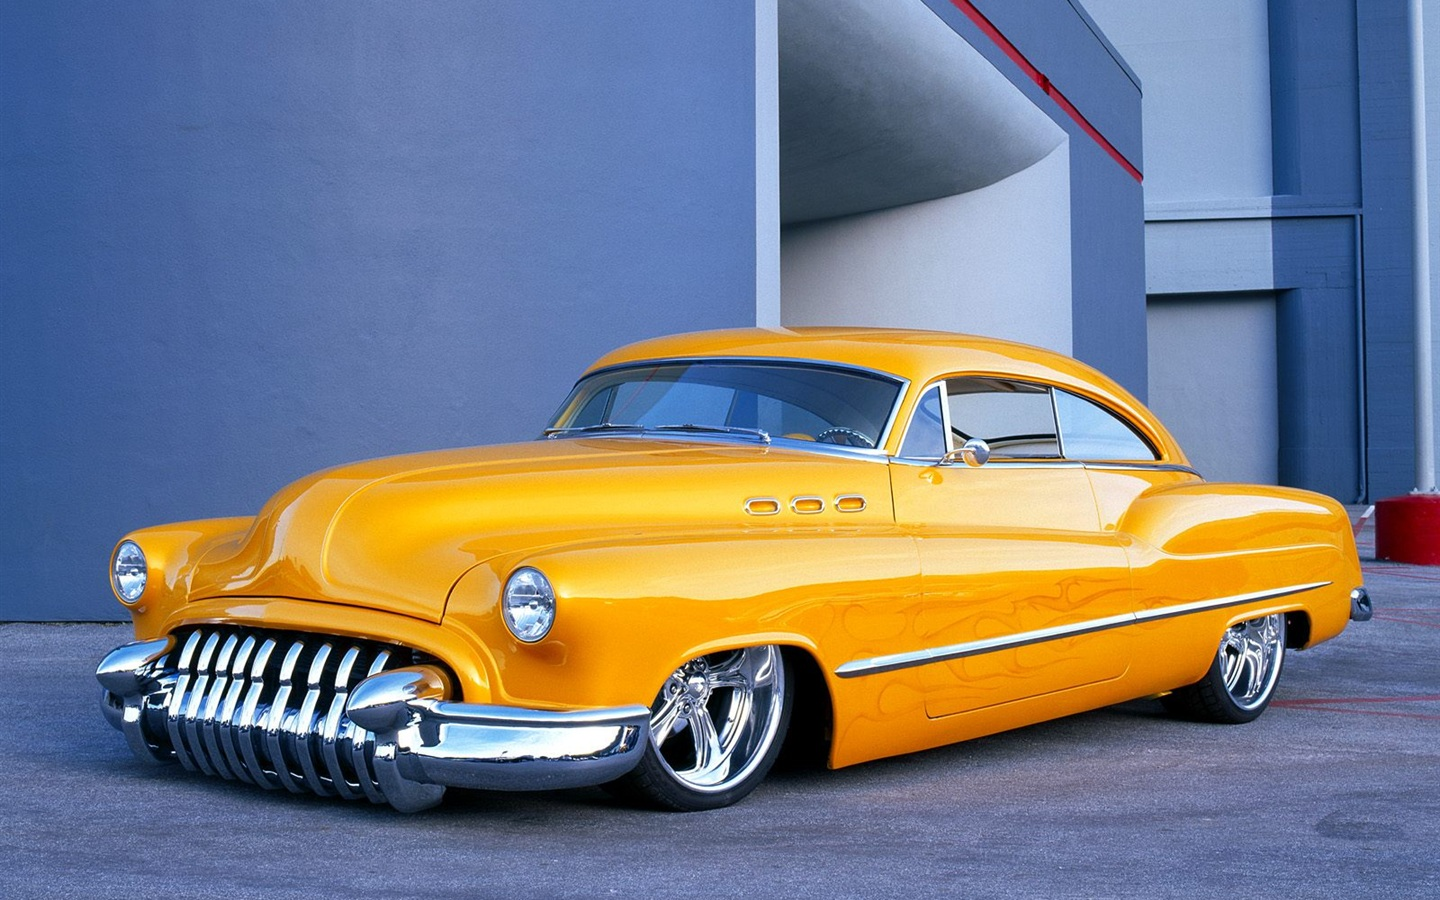 Description: 1950 Buick